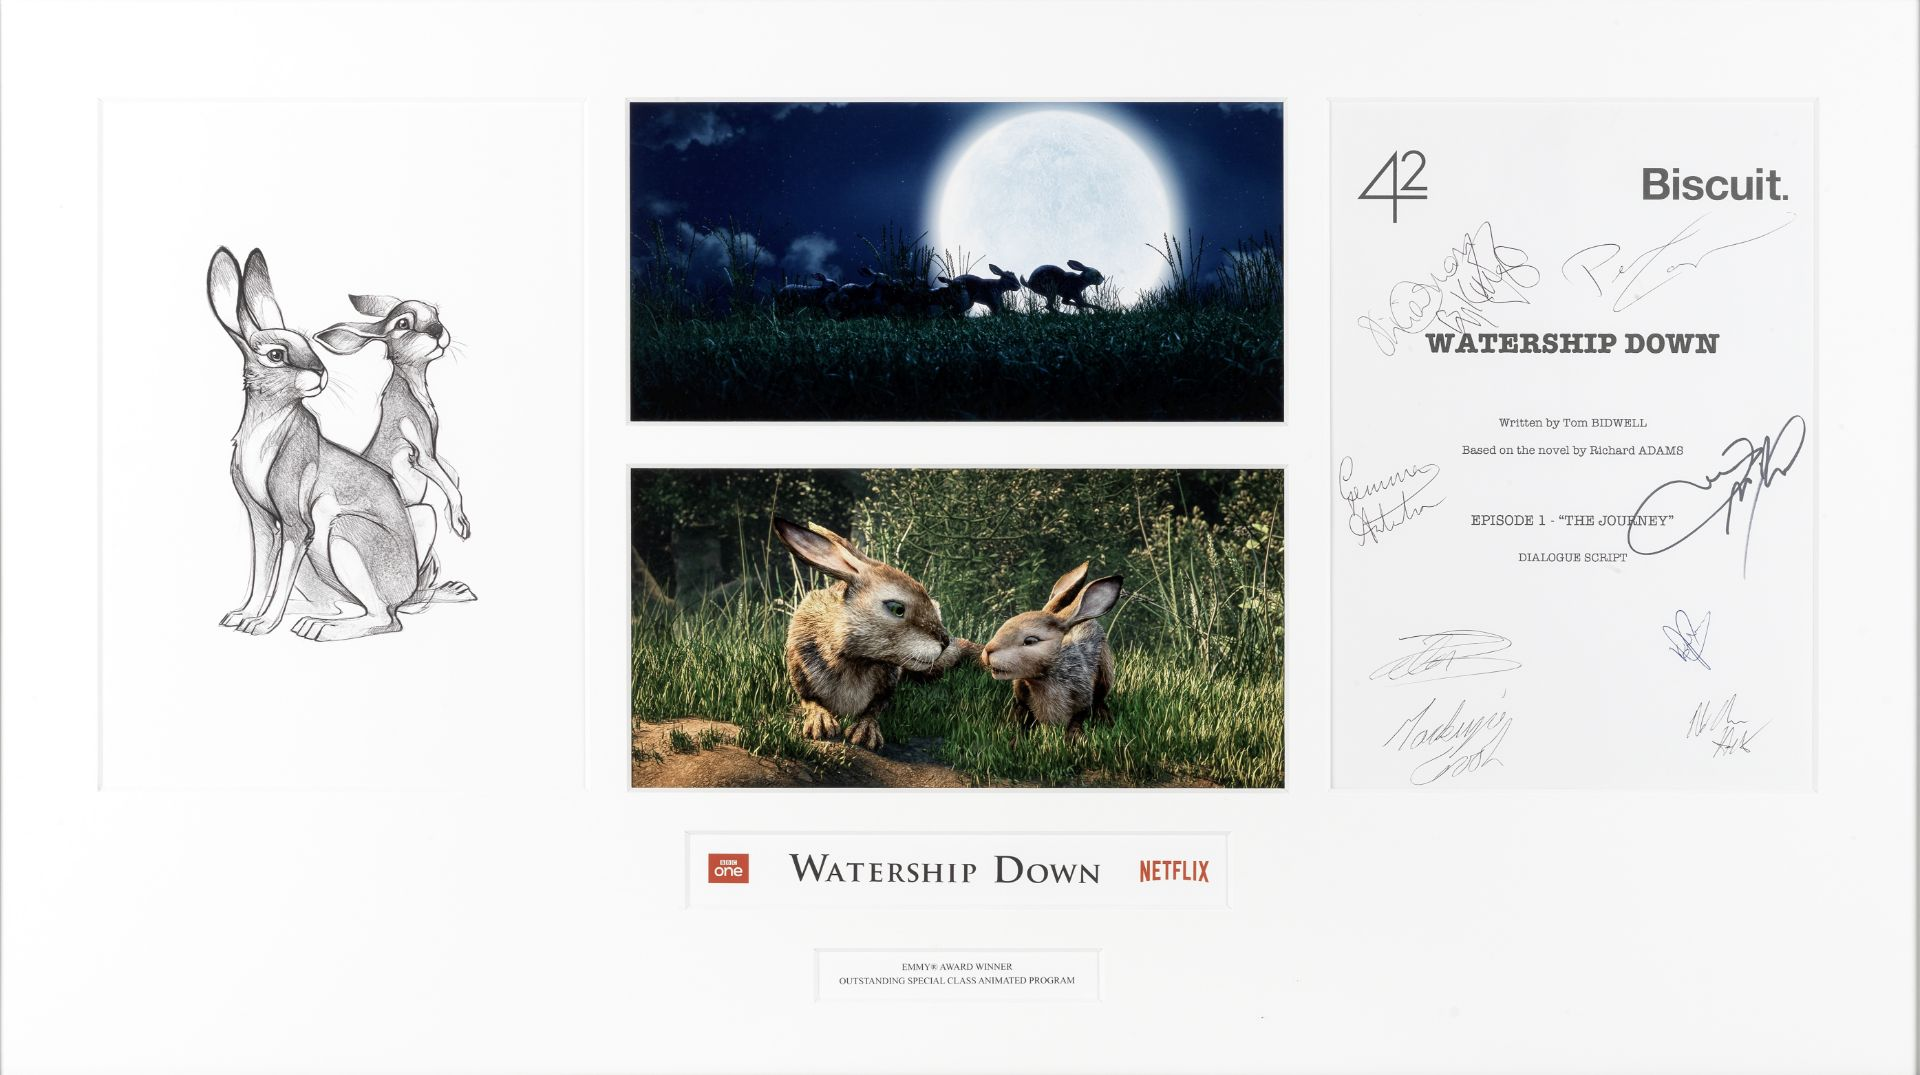 Watership Down: An autographed script page, 42 Productions, 2018,